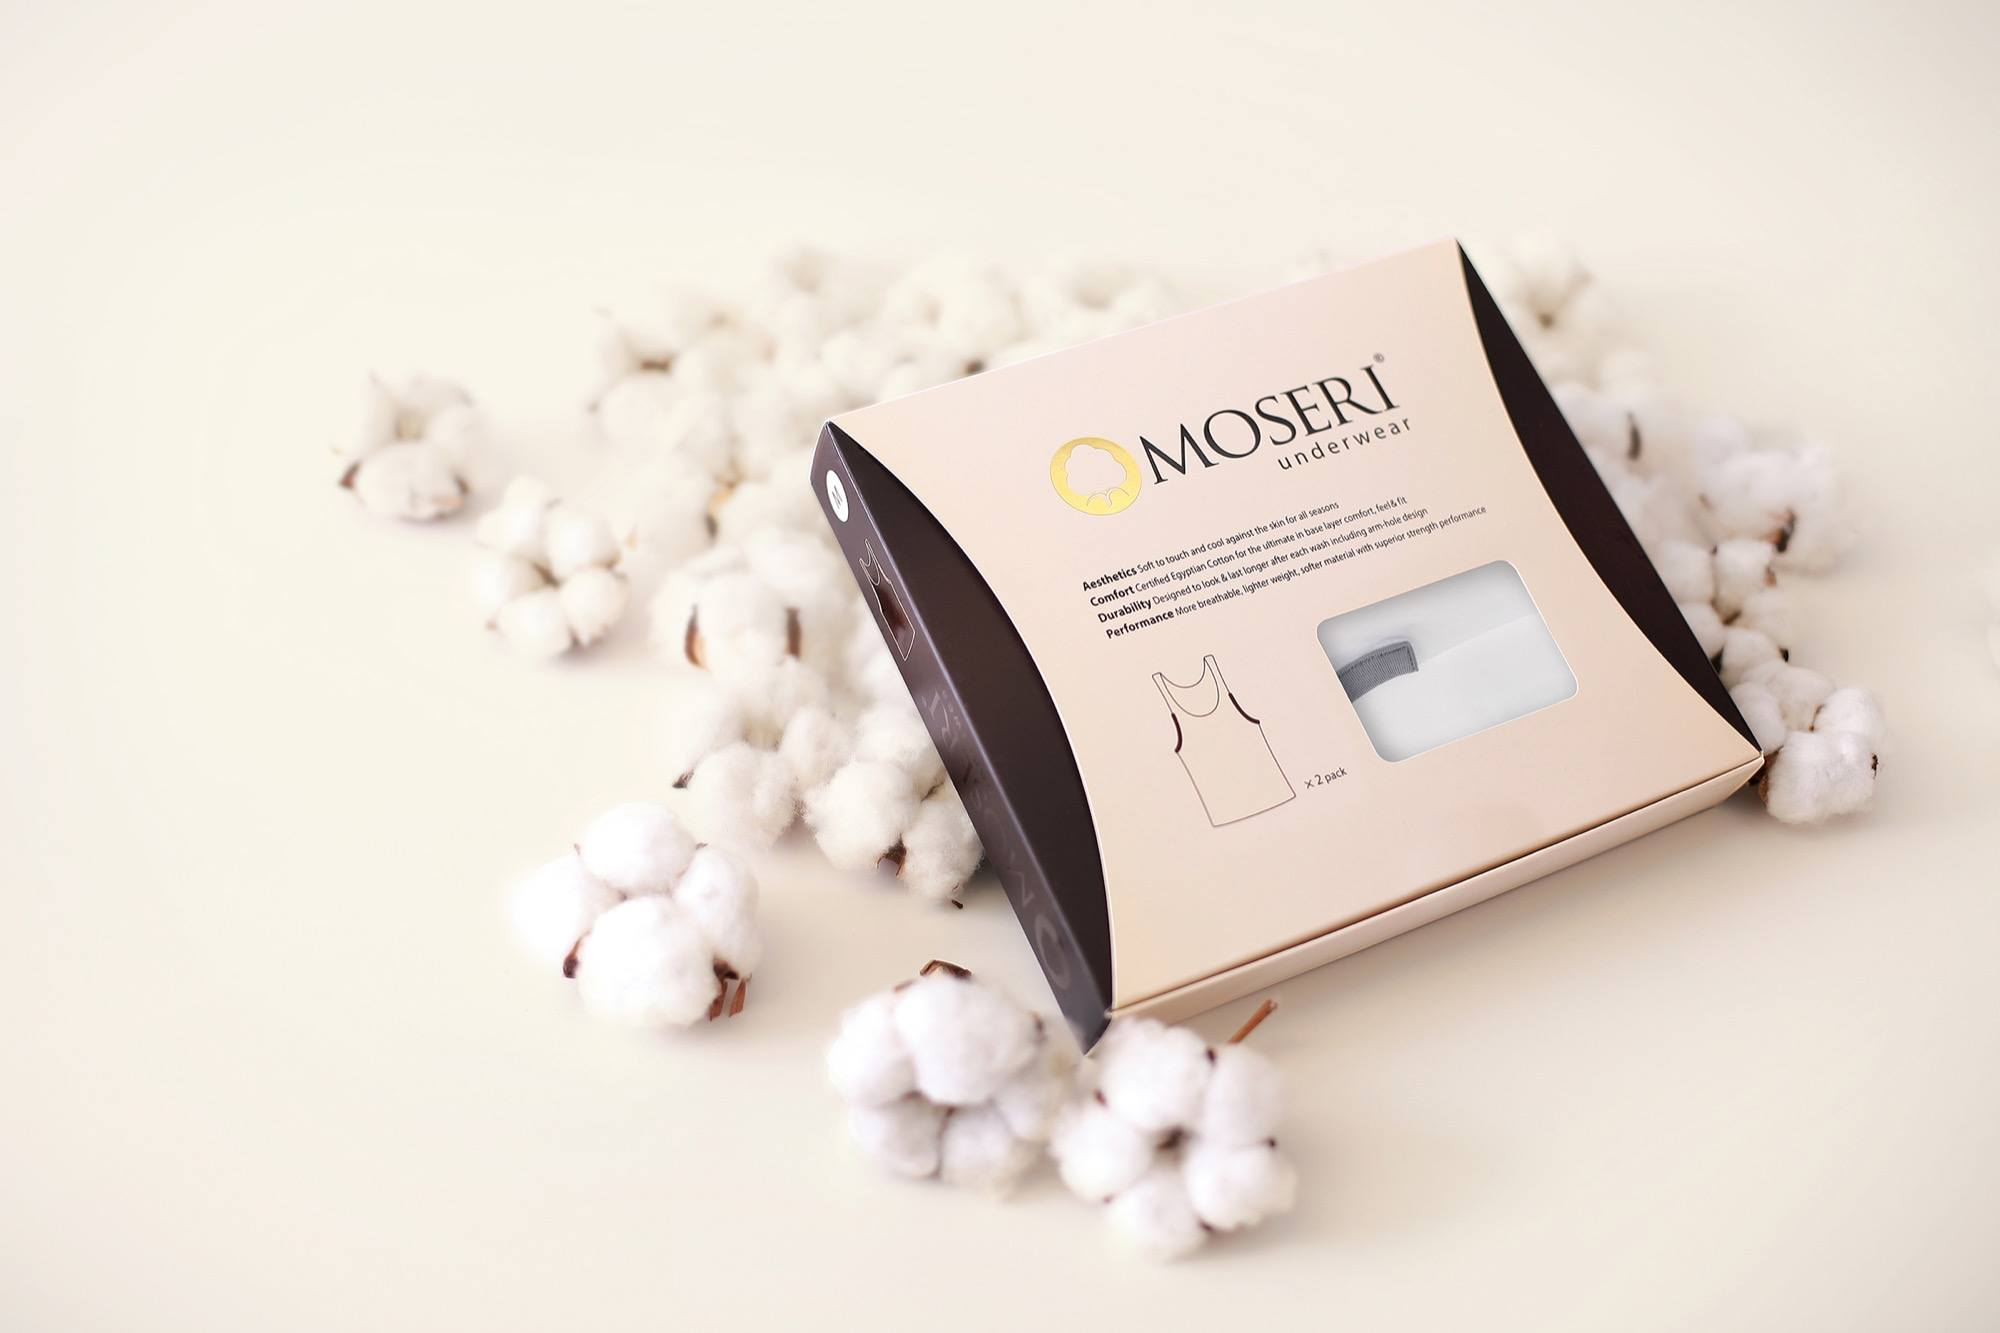 moseri-patent-pending-packaging